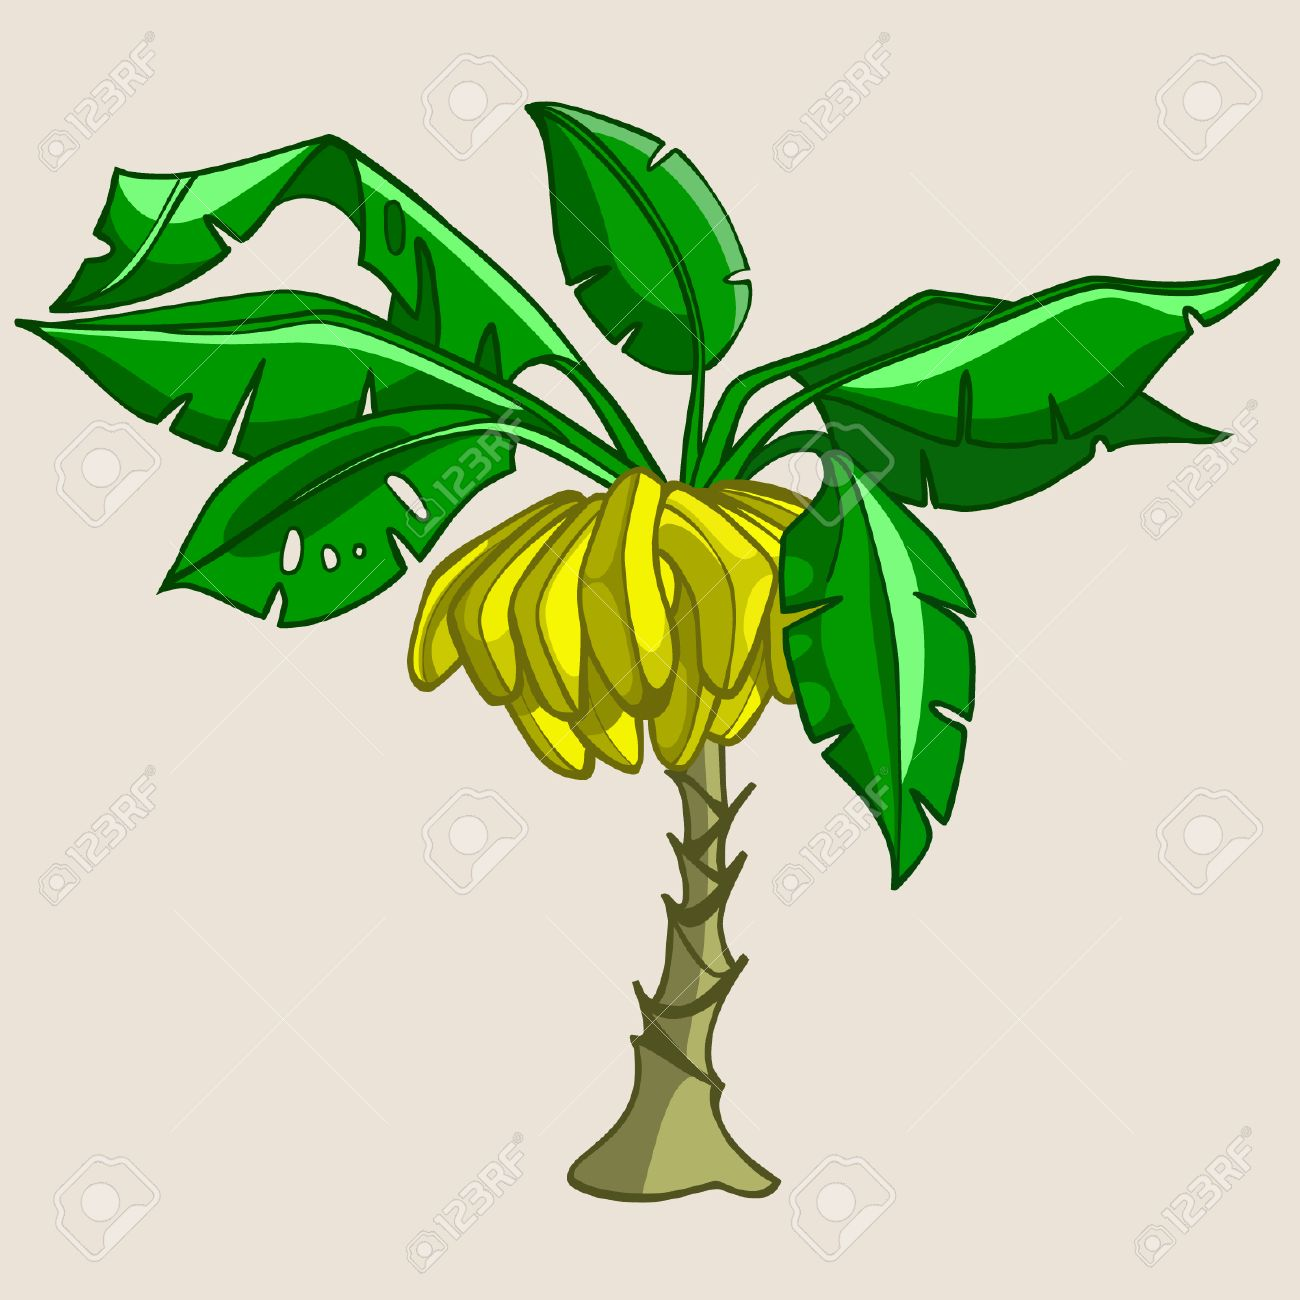 Cartoon Banana Tree With Bananas Royalty Free Cliparts Vectors And Stock Illustration Image 58014293